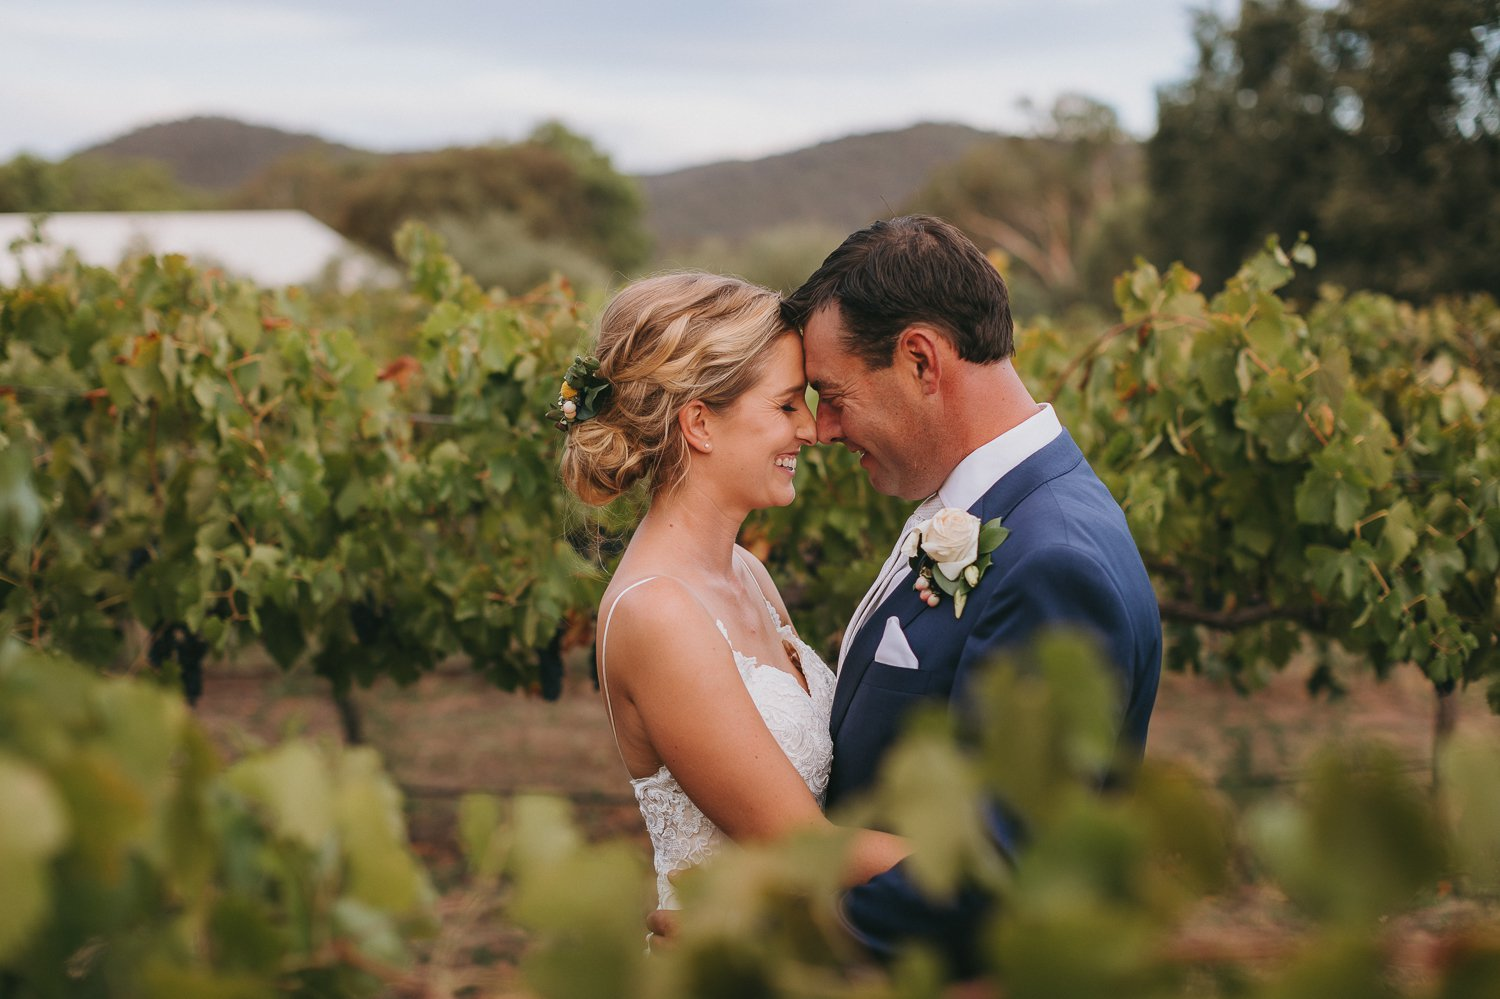 Vinegrove_Mudgee Weding Photography 1.jpg